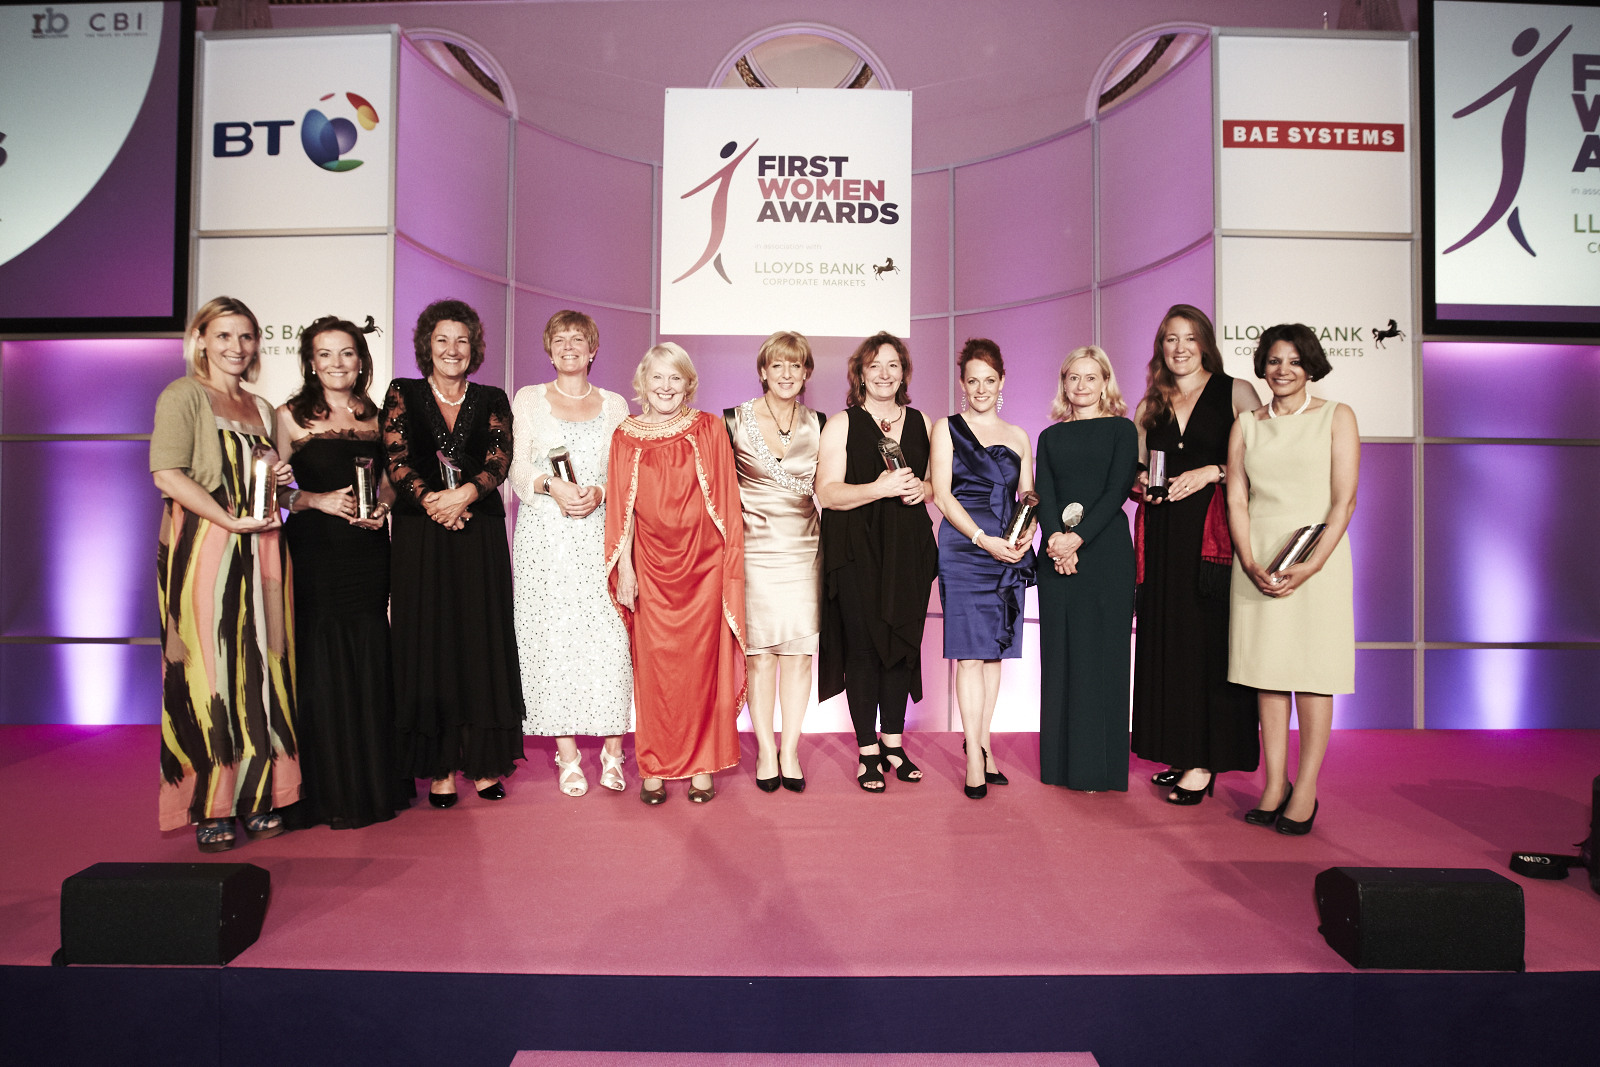 First Women Awards 2011: the winners